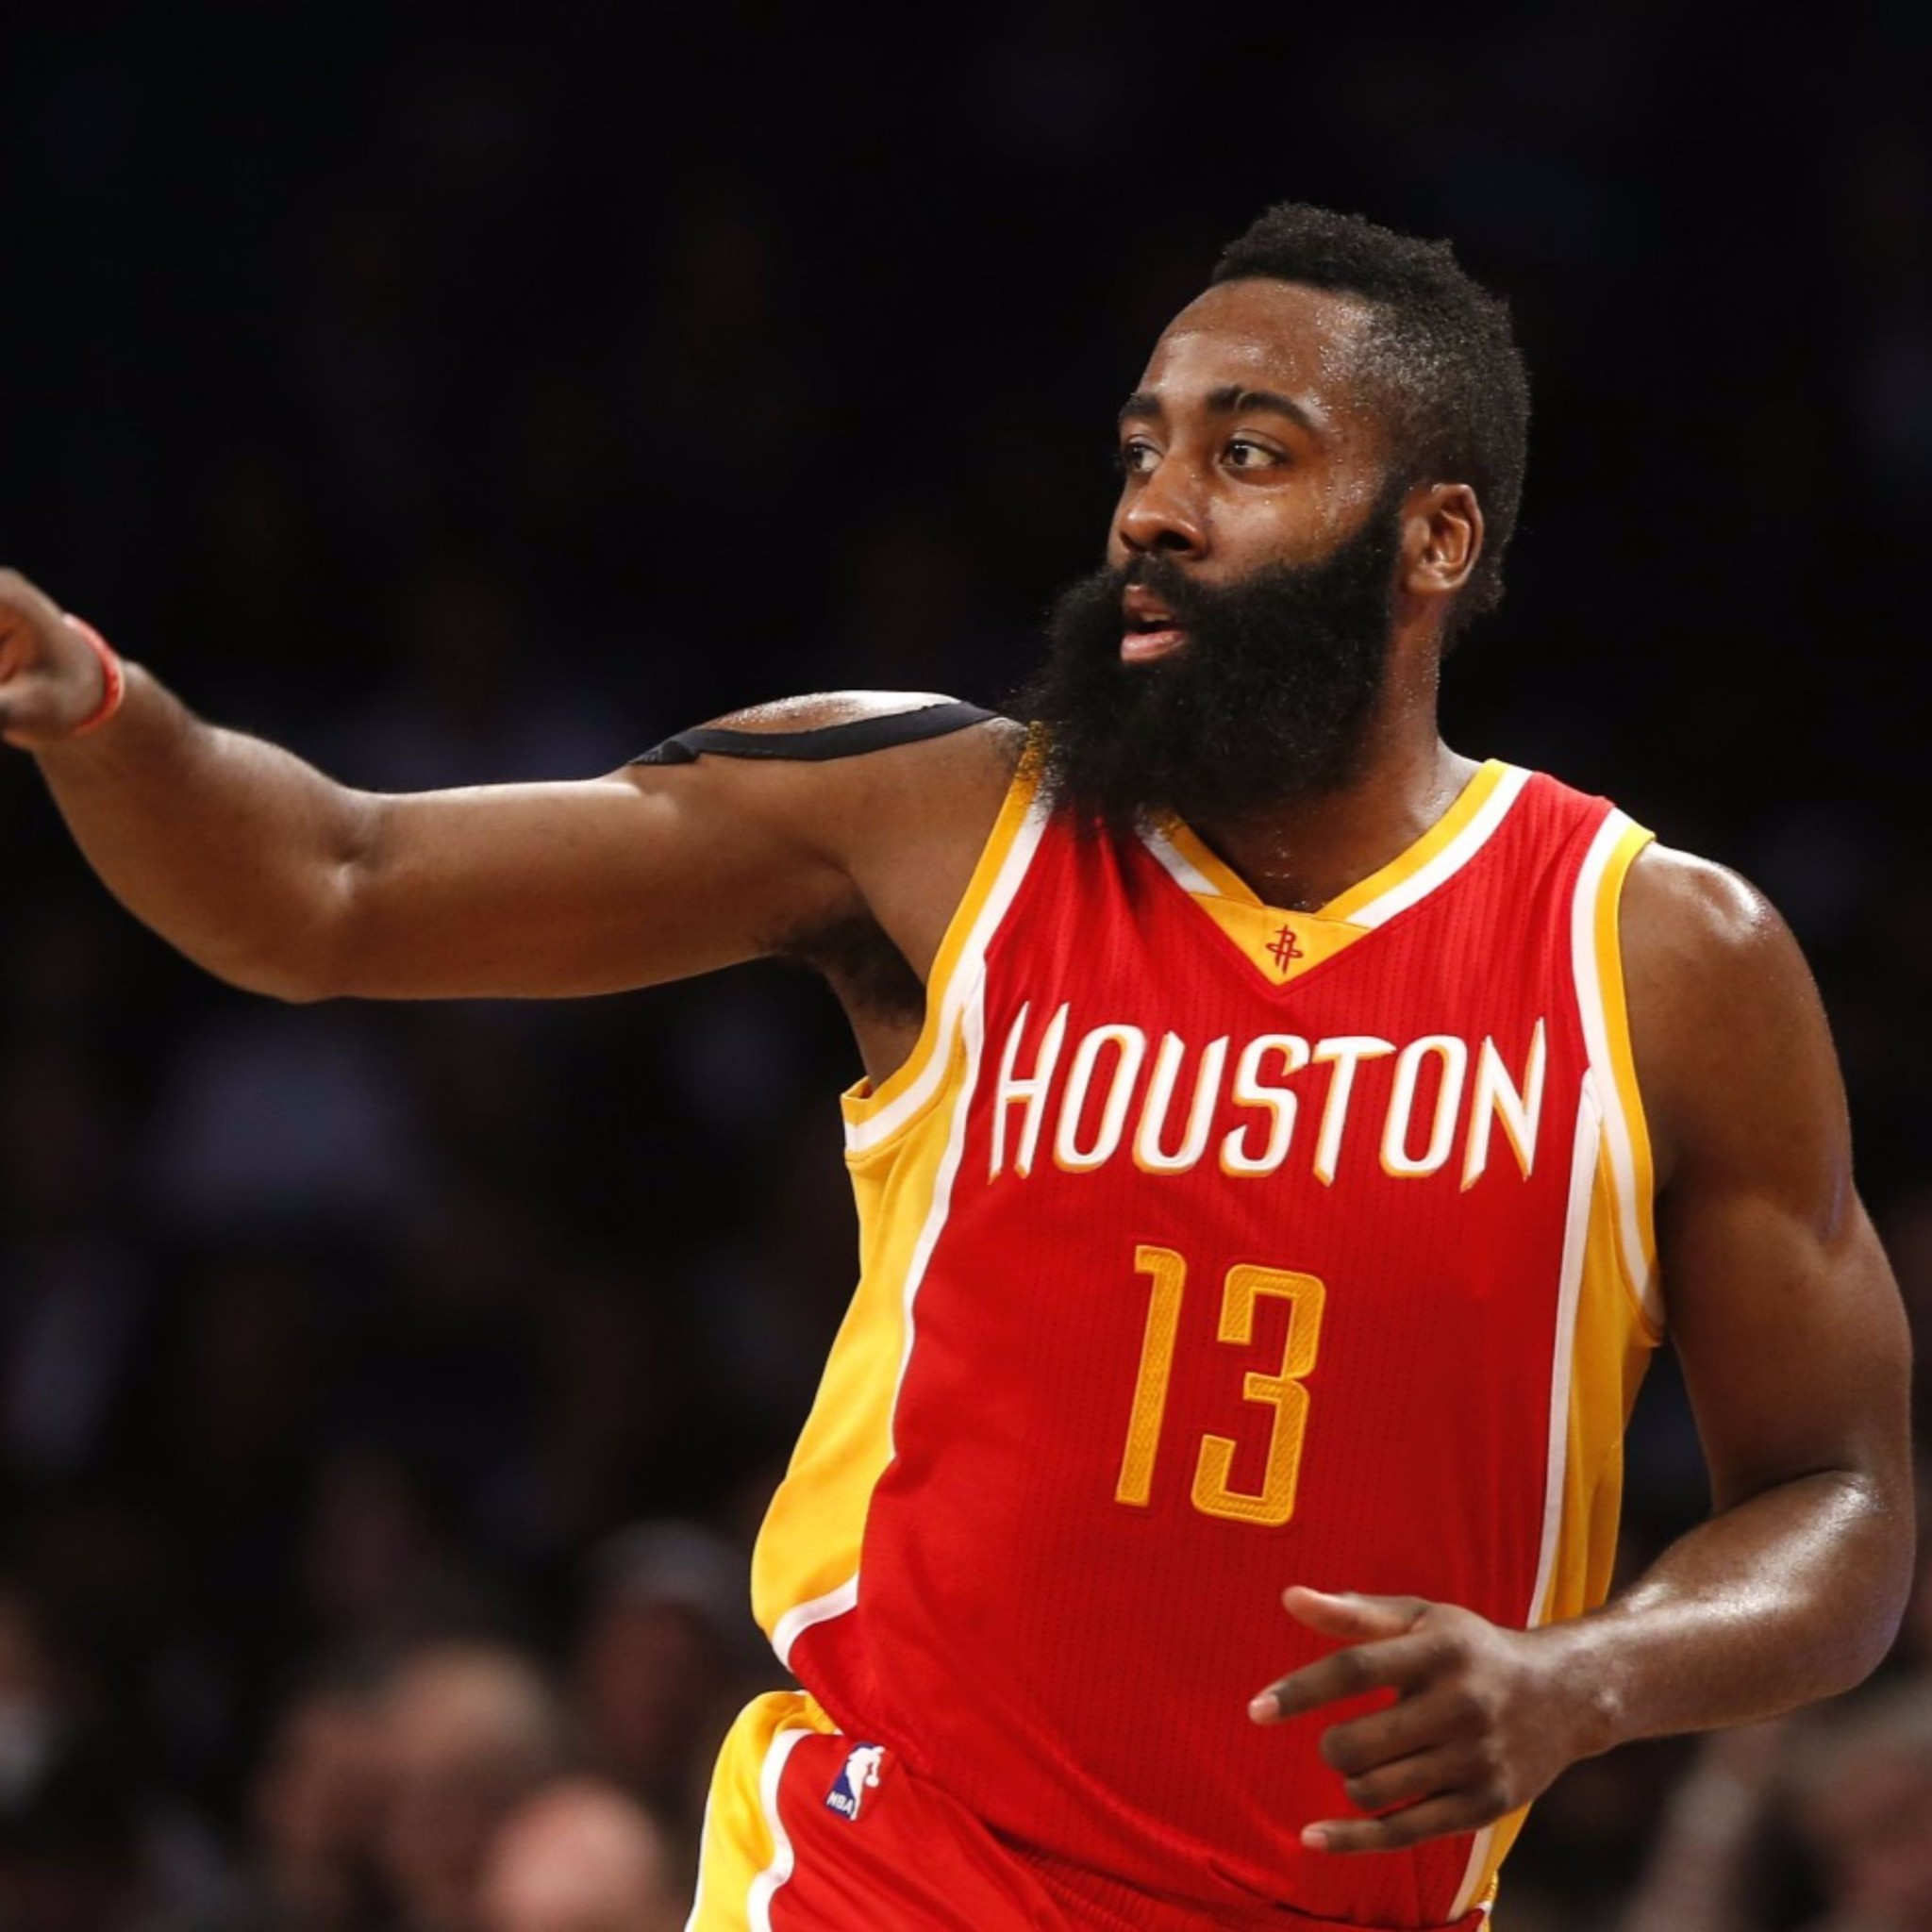 Related to Rockets #13 James Harden 4K Wallpaper